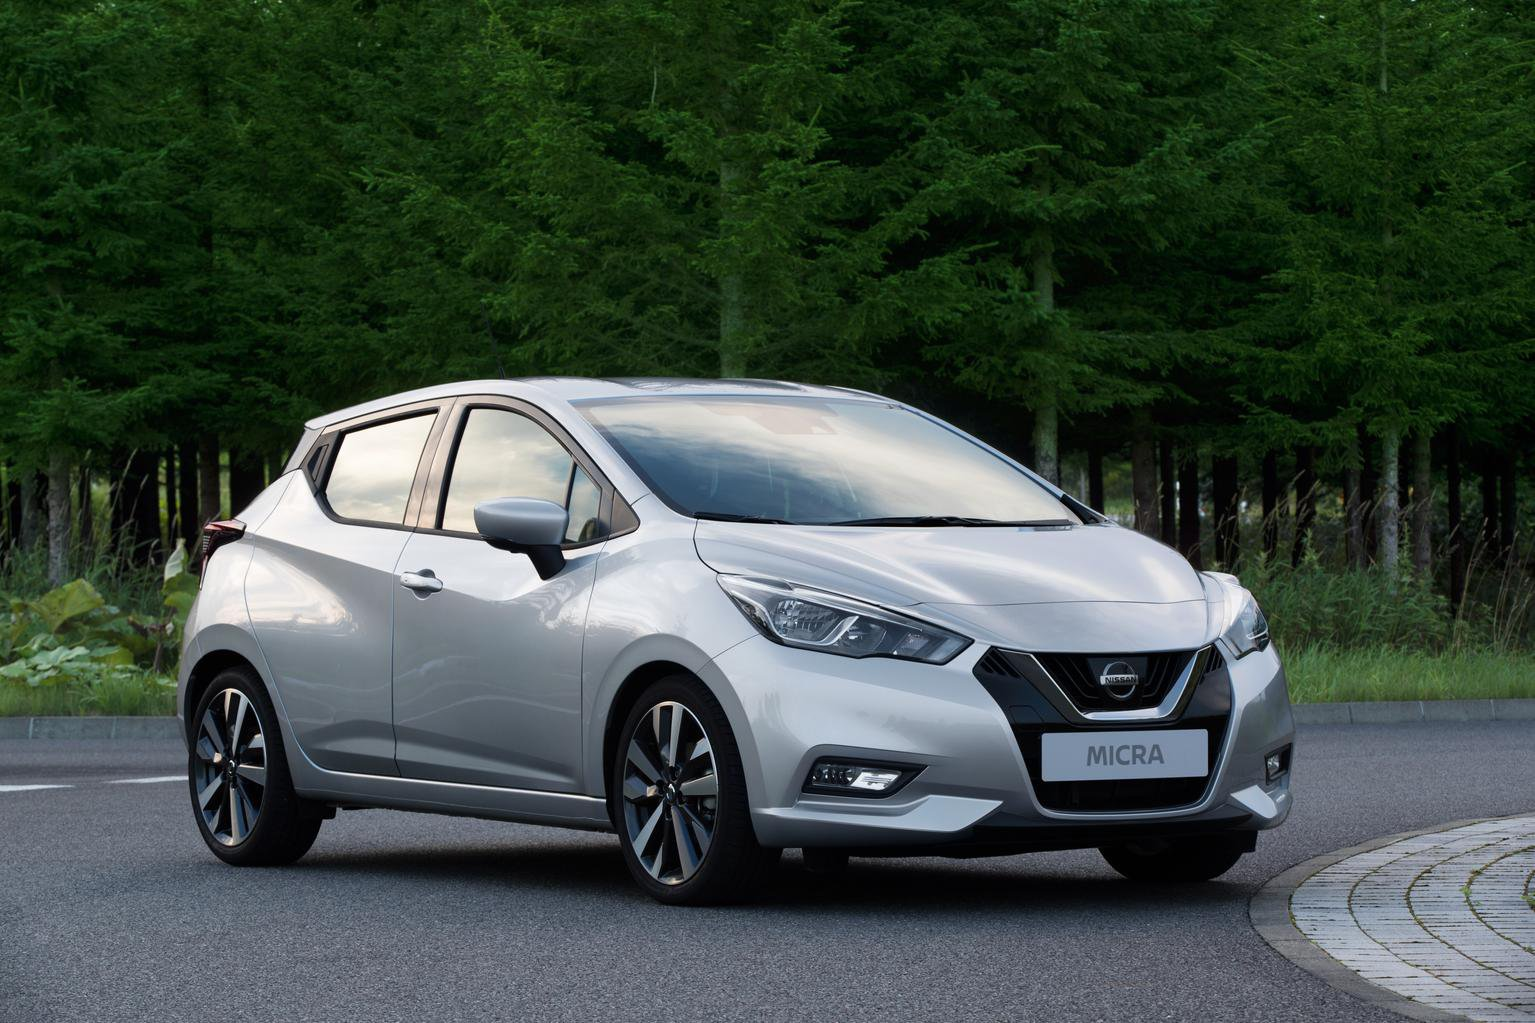 2017 Nissan Micra - exclusive reader test team preview